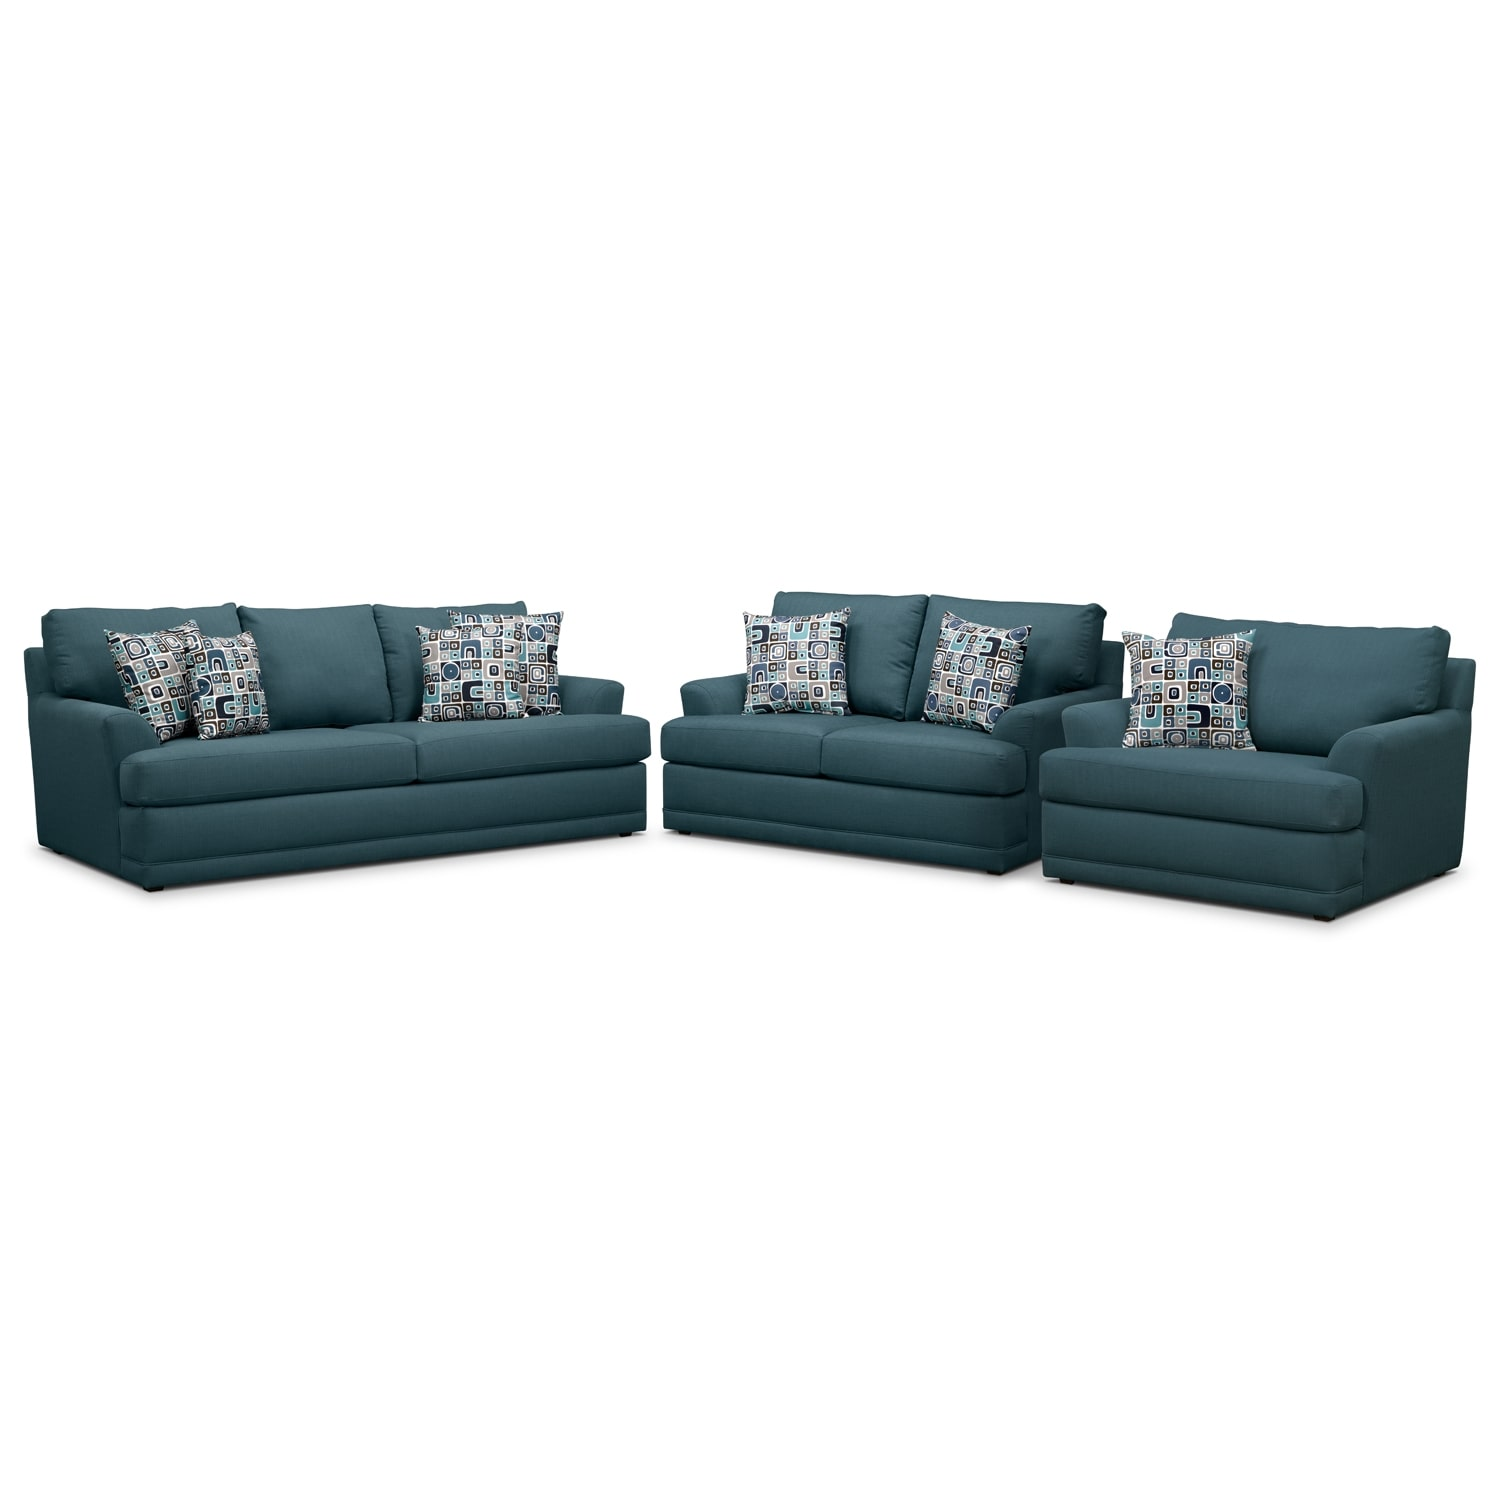 Kismet Sofa Loveseat and Chair and a Half Set Teal American